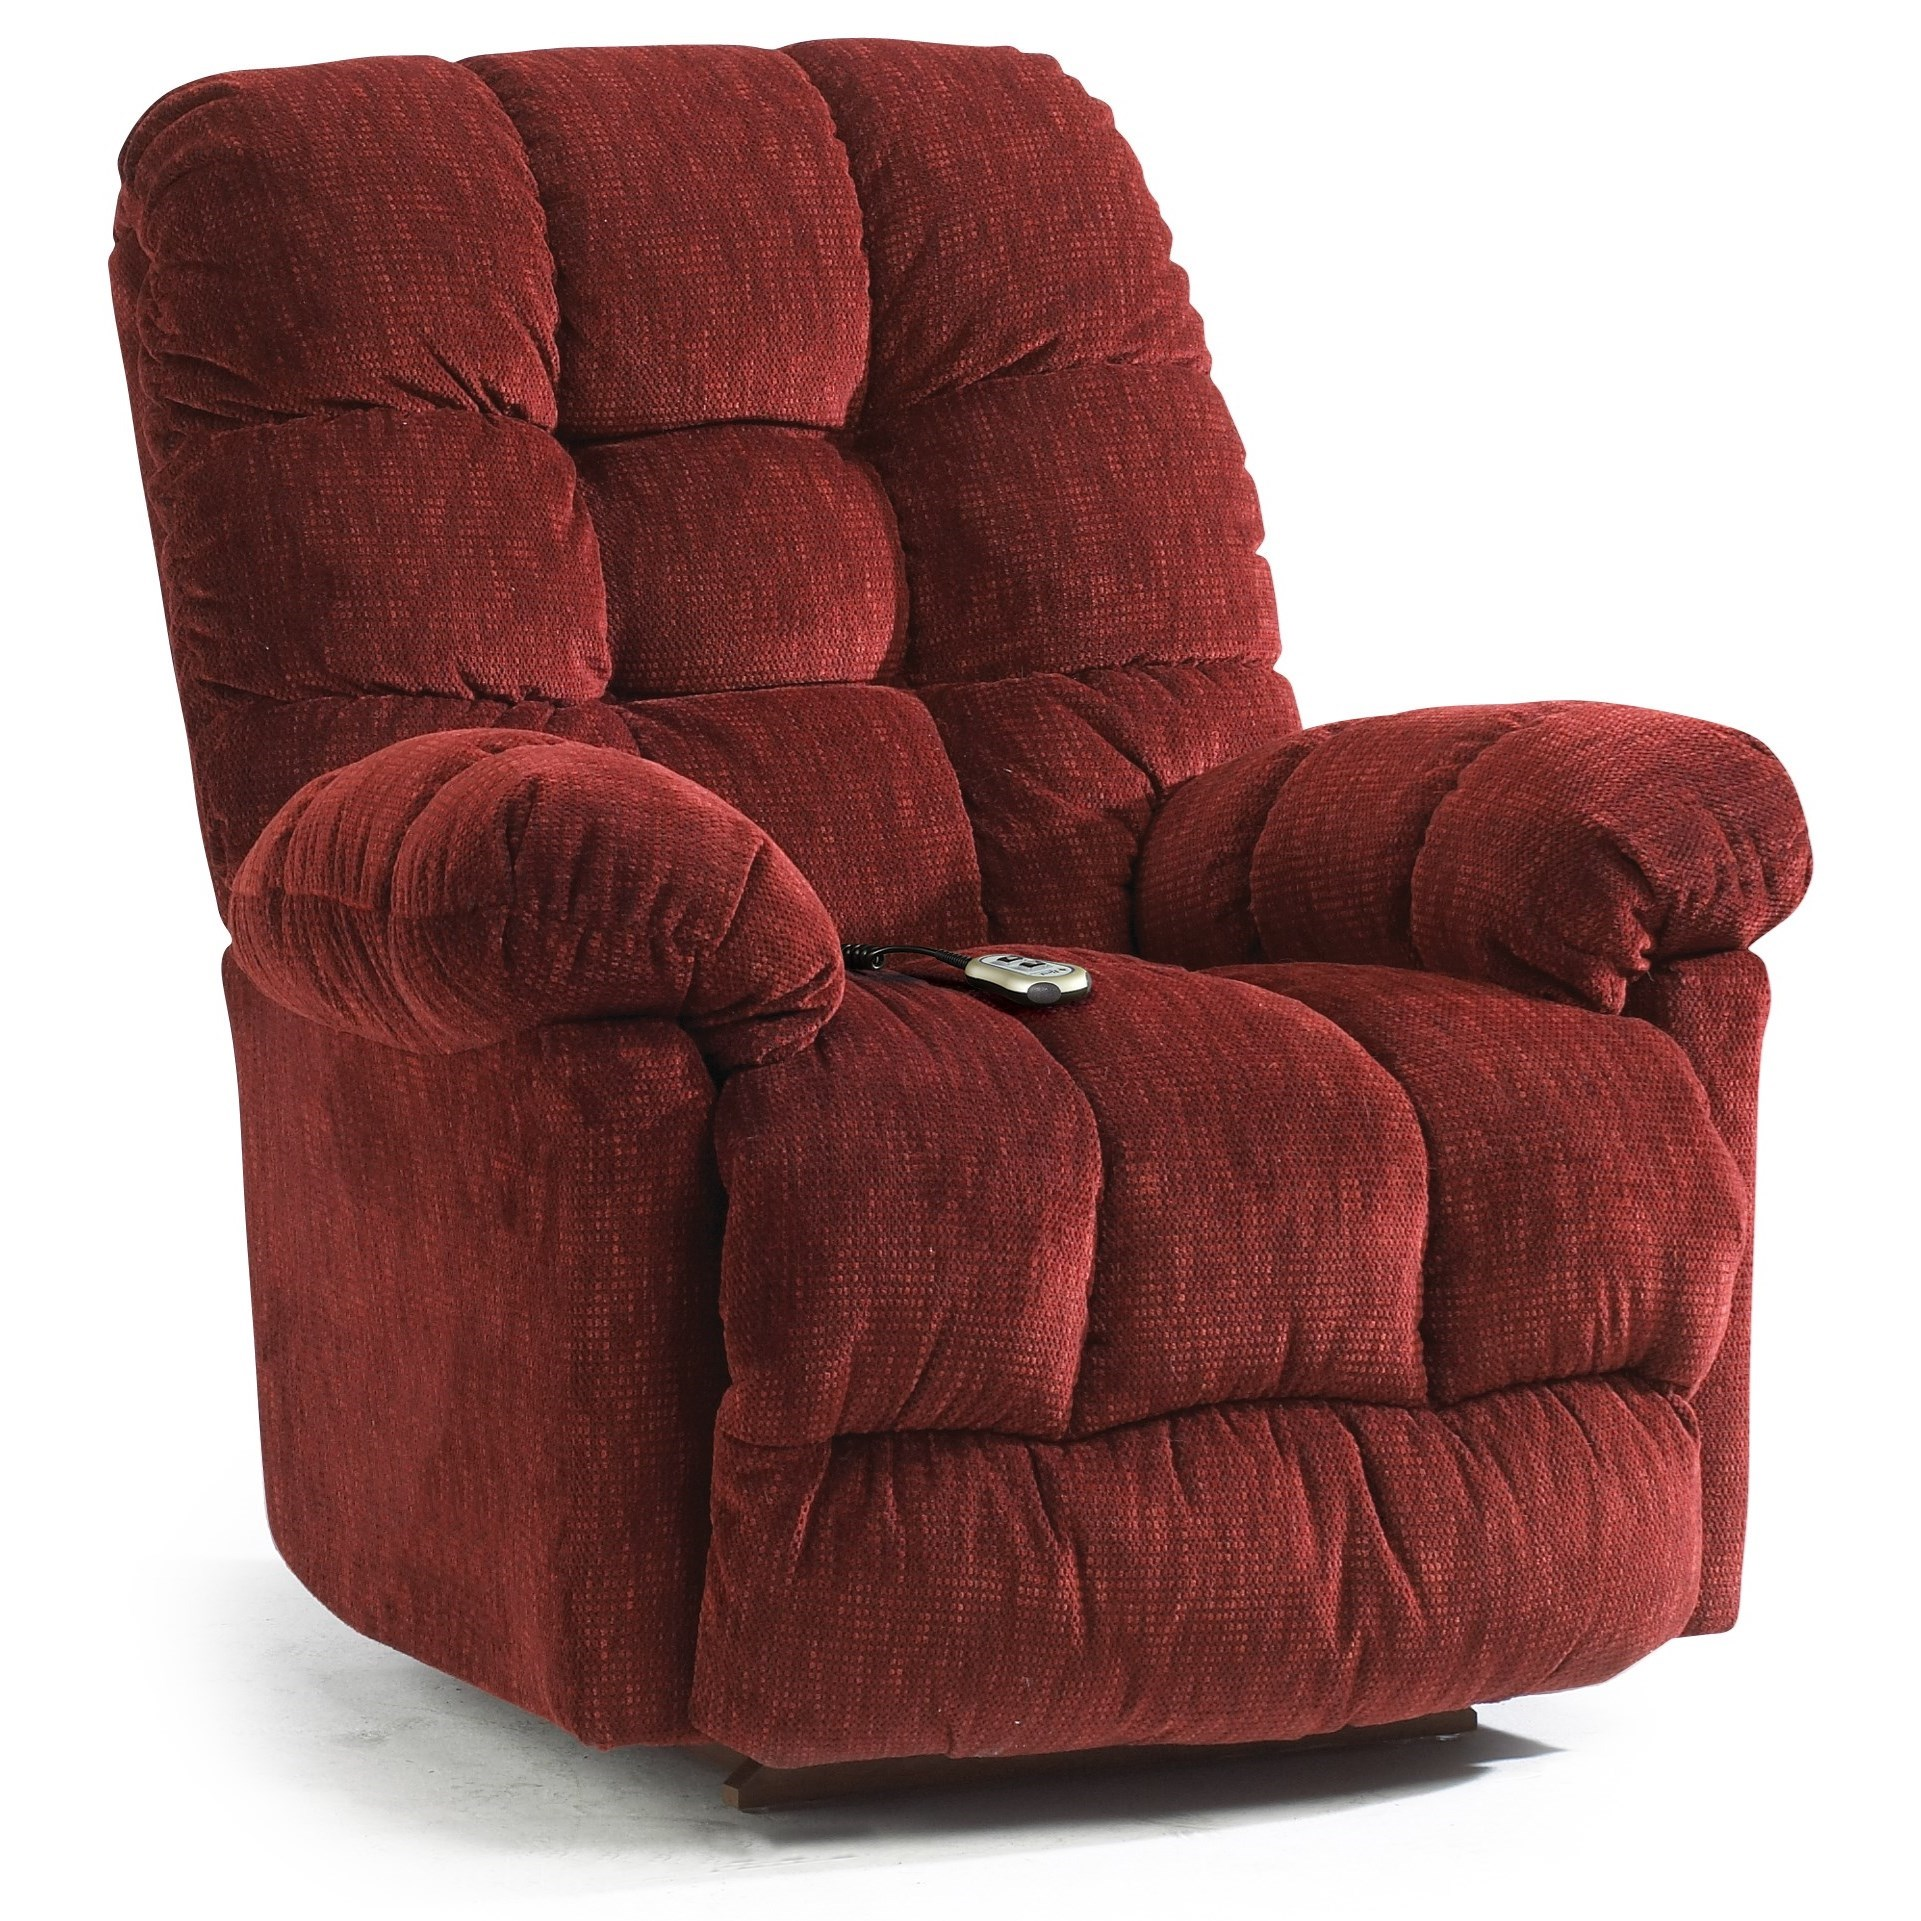 Medium Recliners Brosmer Power Lift Recliner w/ Pwr Headrest by Best Home Furnishings at Baer's Furniture